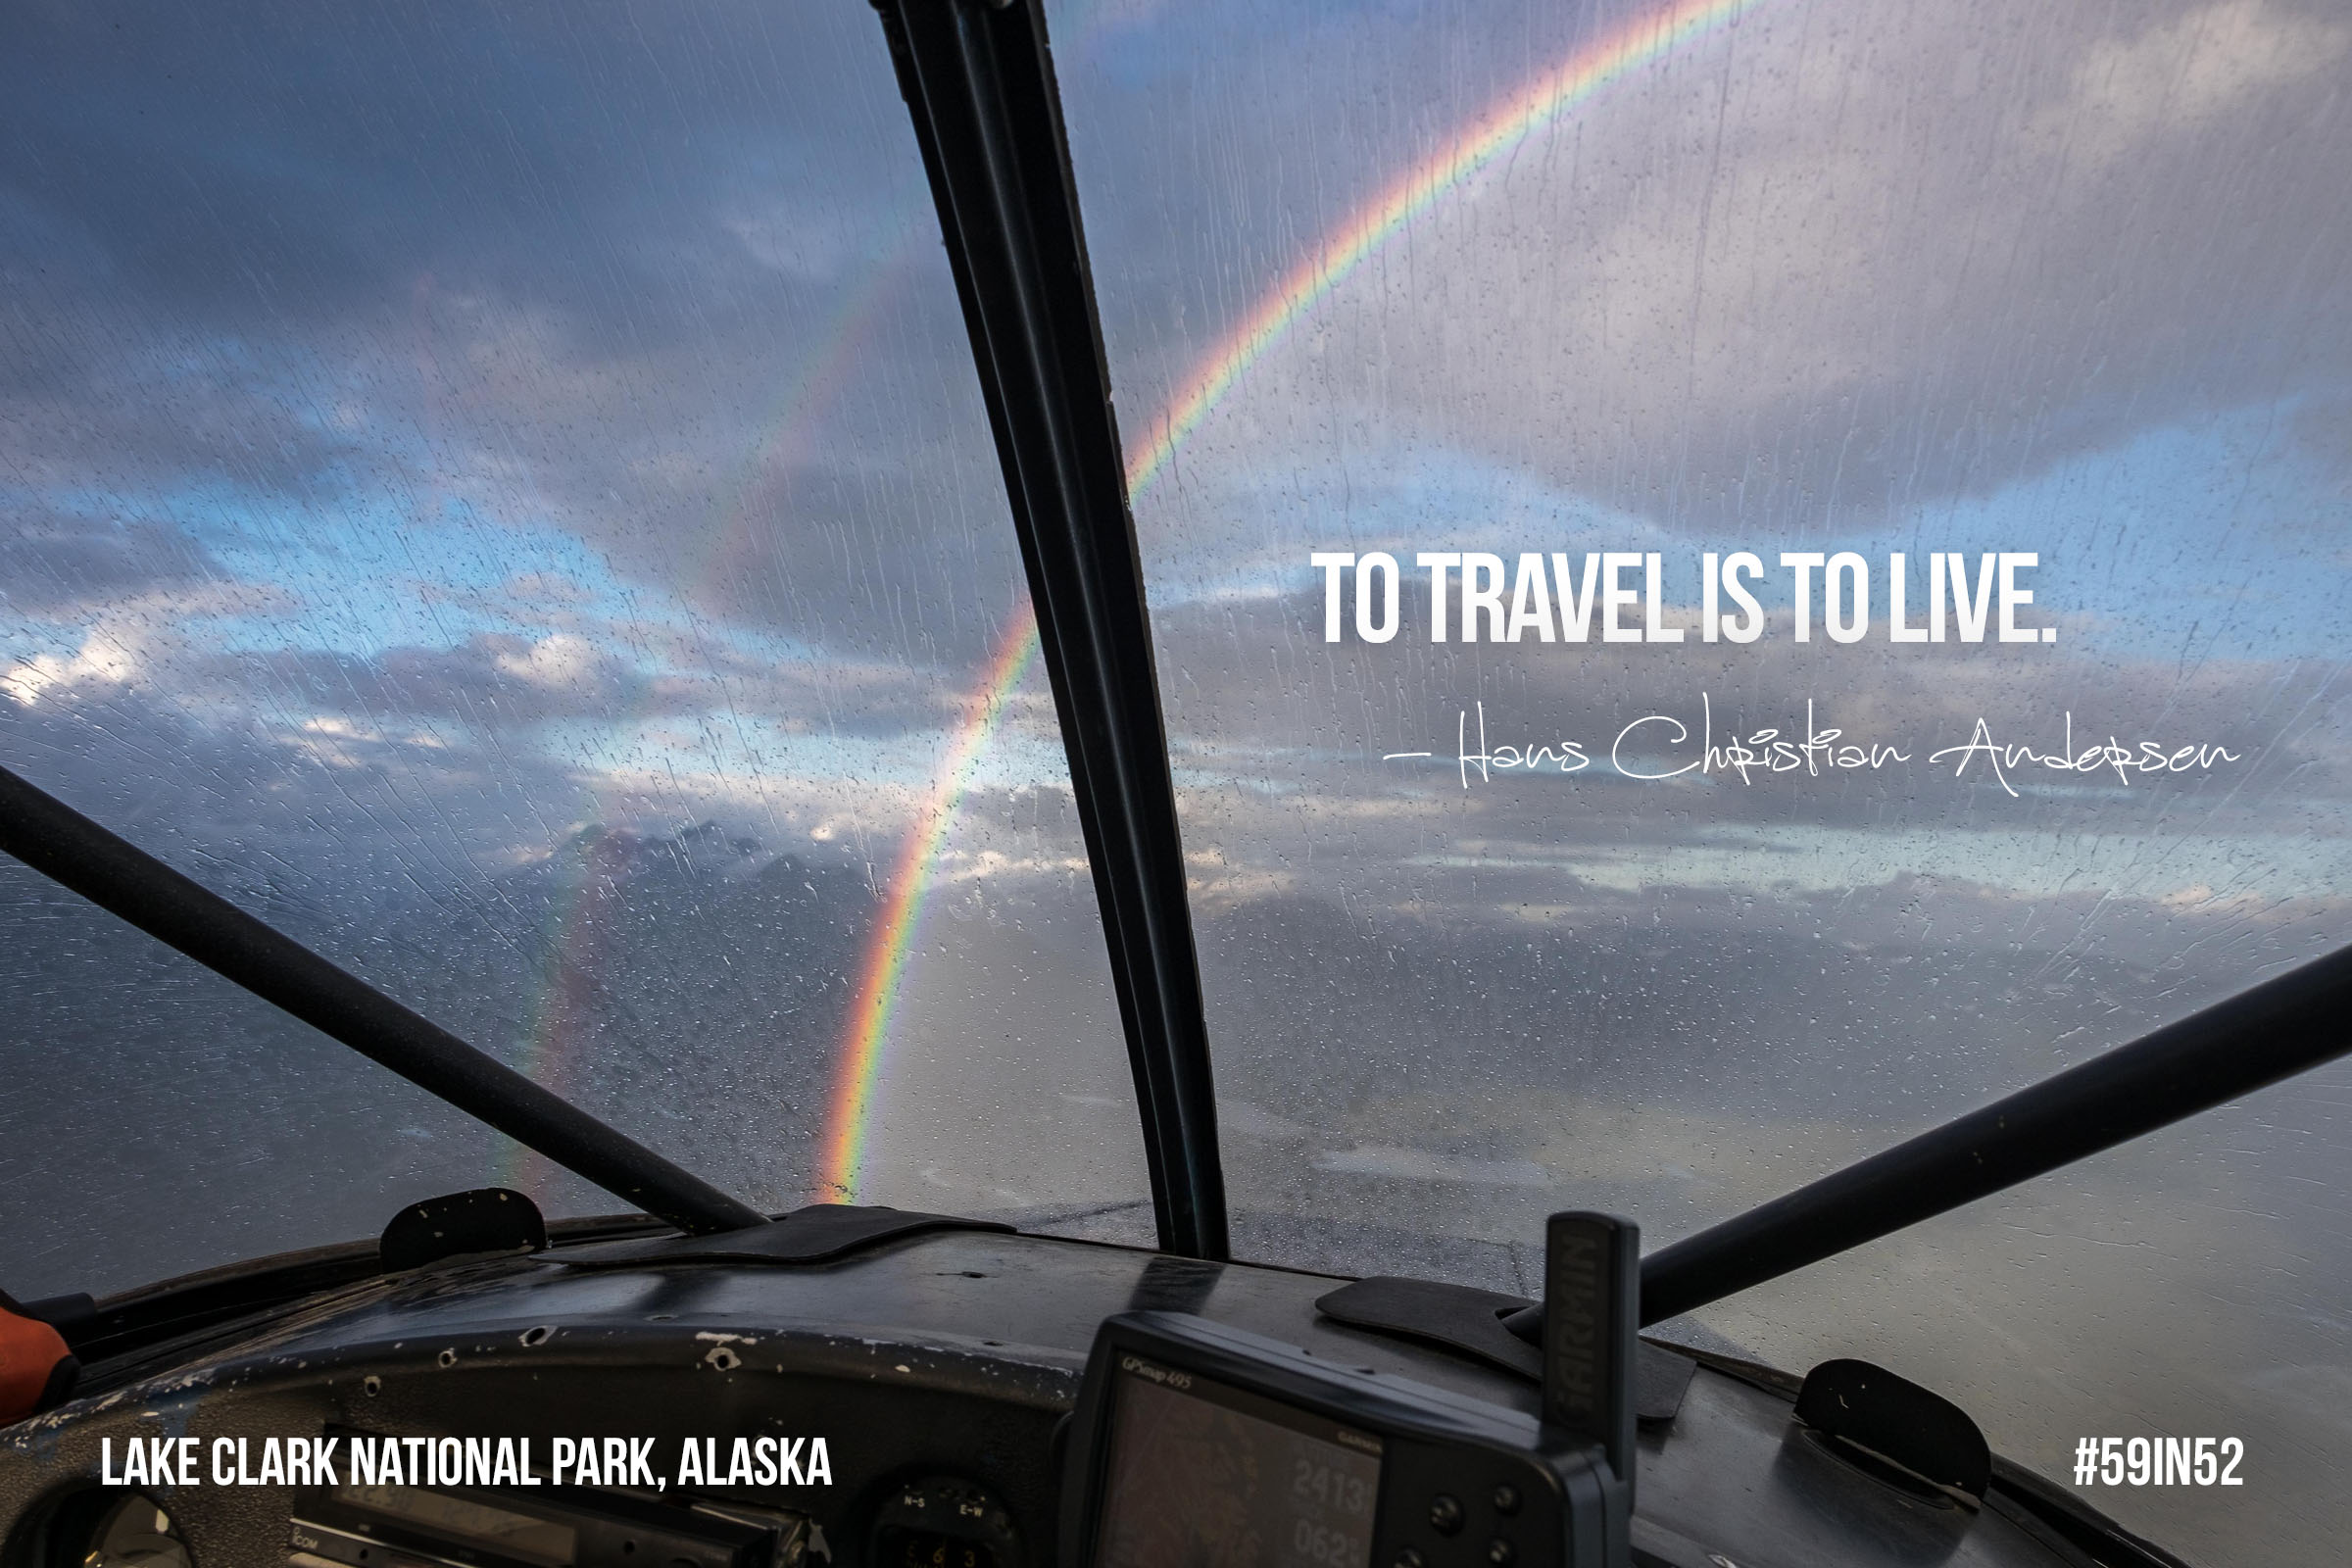 """To travel is to live."" - Hans Christian Andersen"